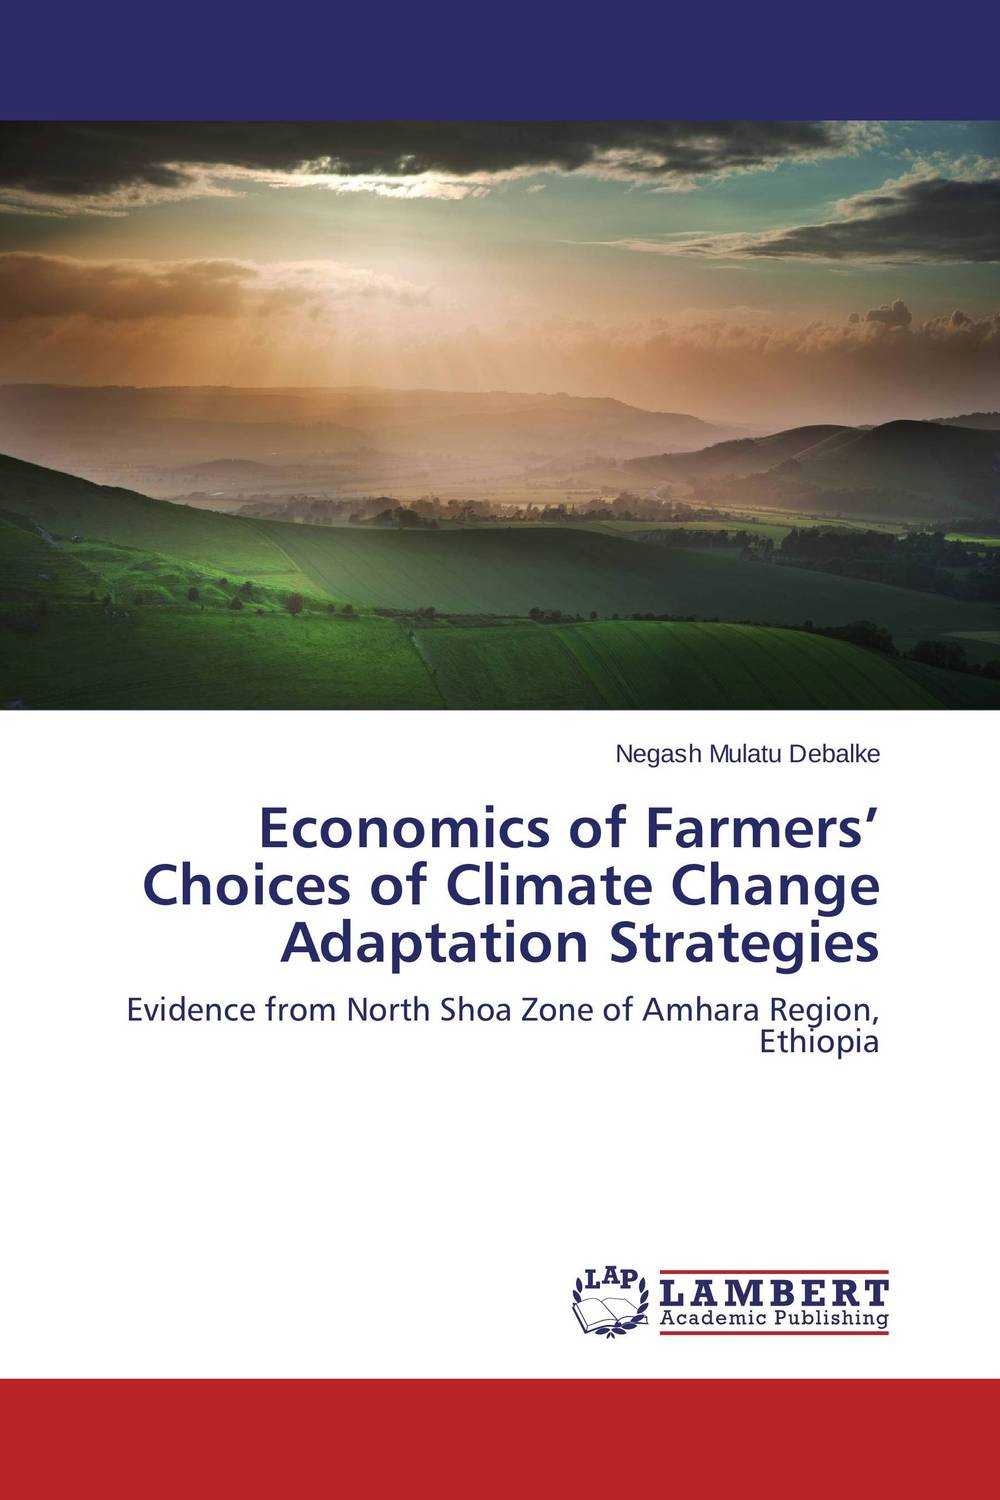 Economics of Farmers' Choices of Climate Change Adaptation Strategies climate change initiatives and strategies